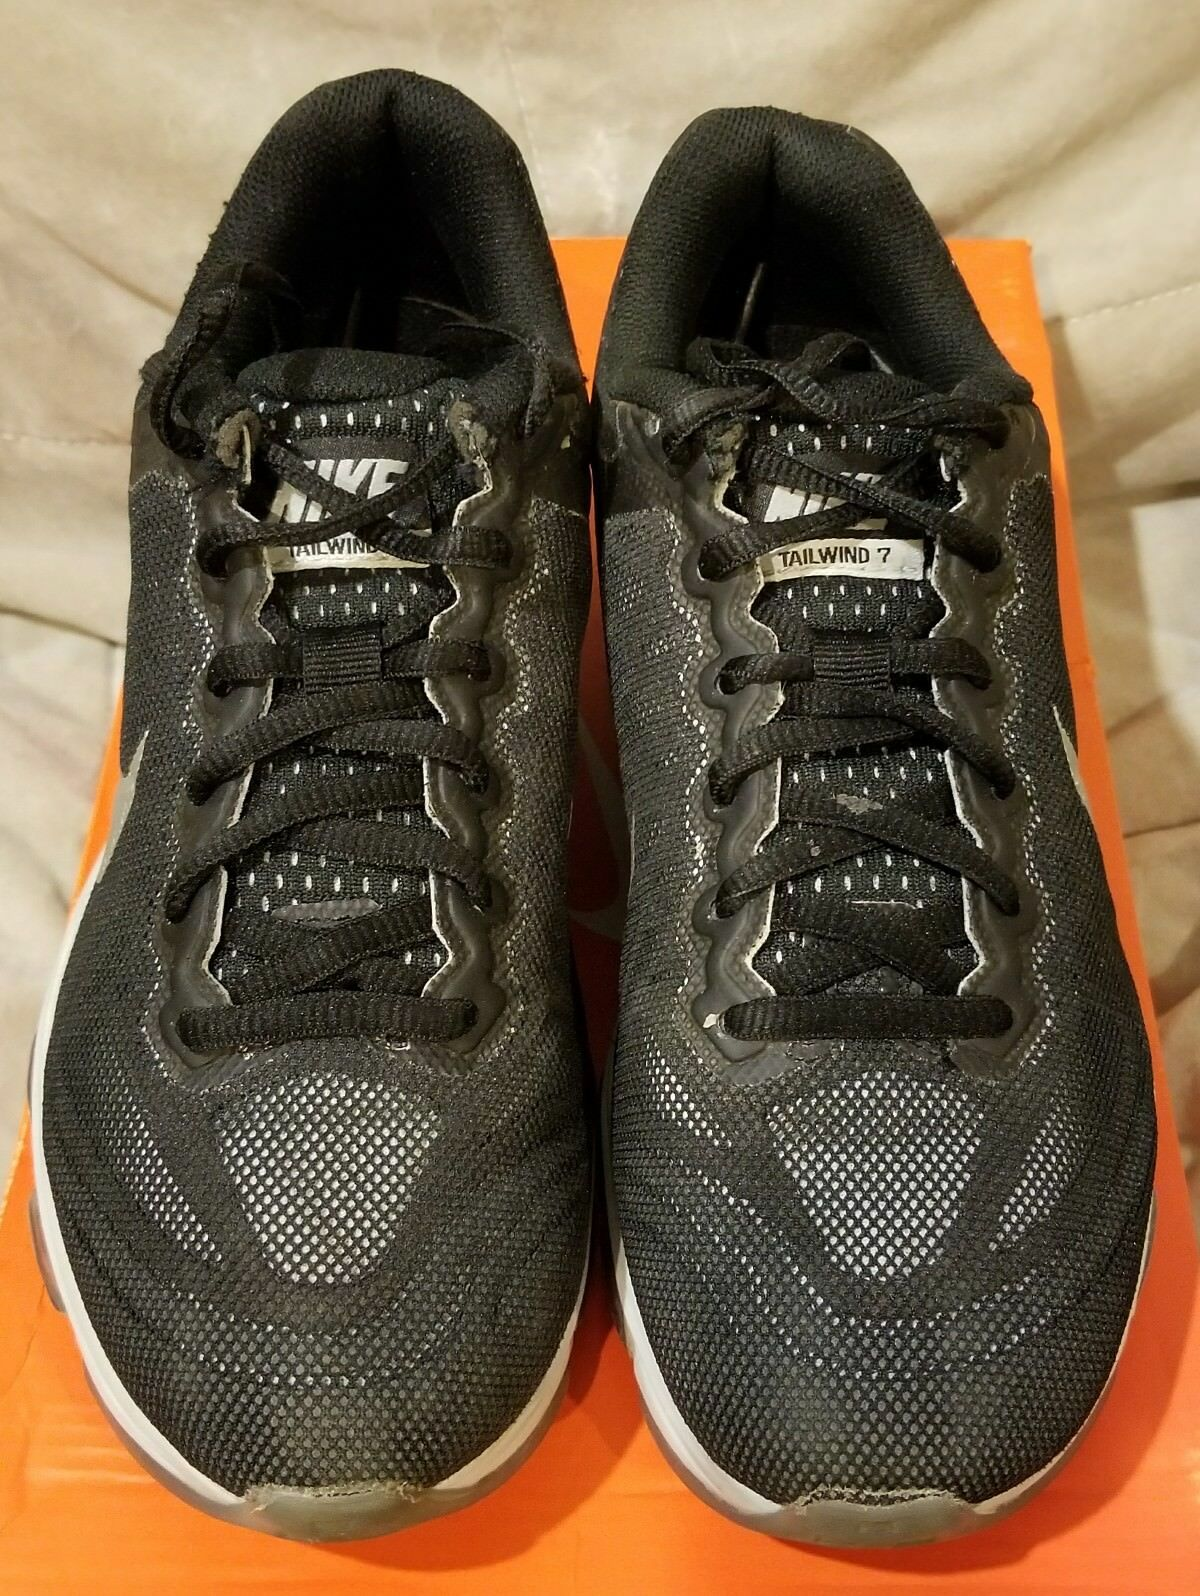 Nke Air Max Tailwind 7 683635-001 Sneakers shoes Sz 7.5